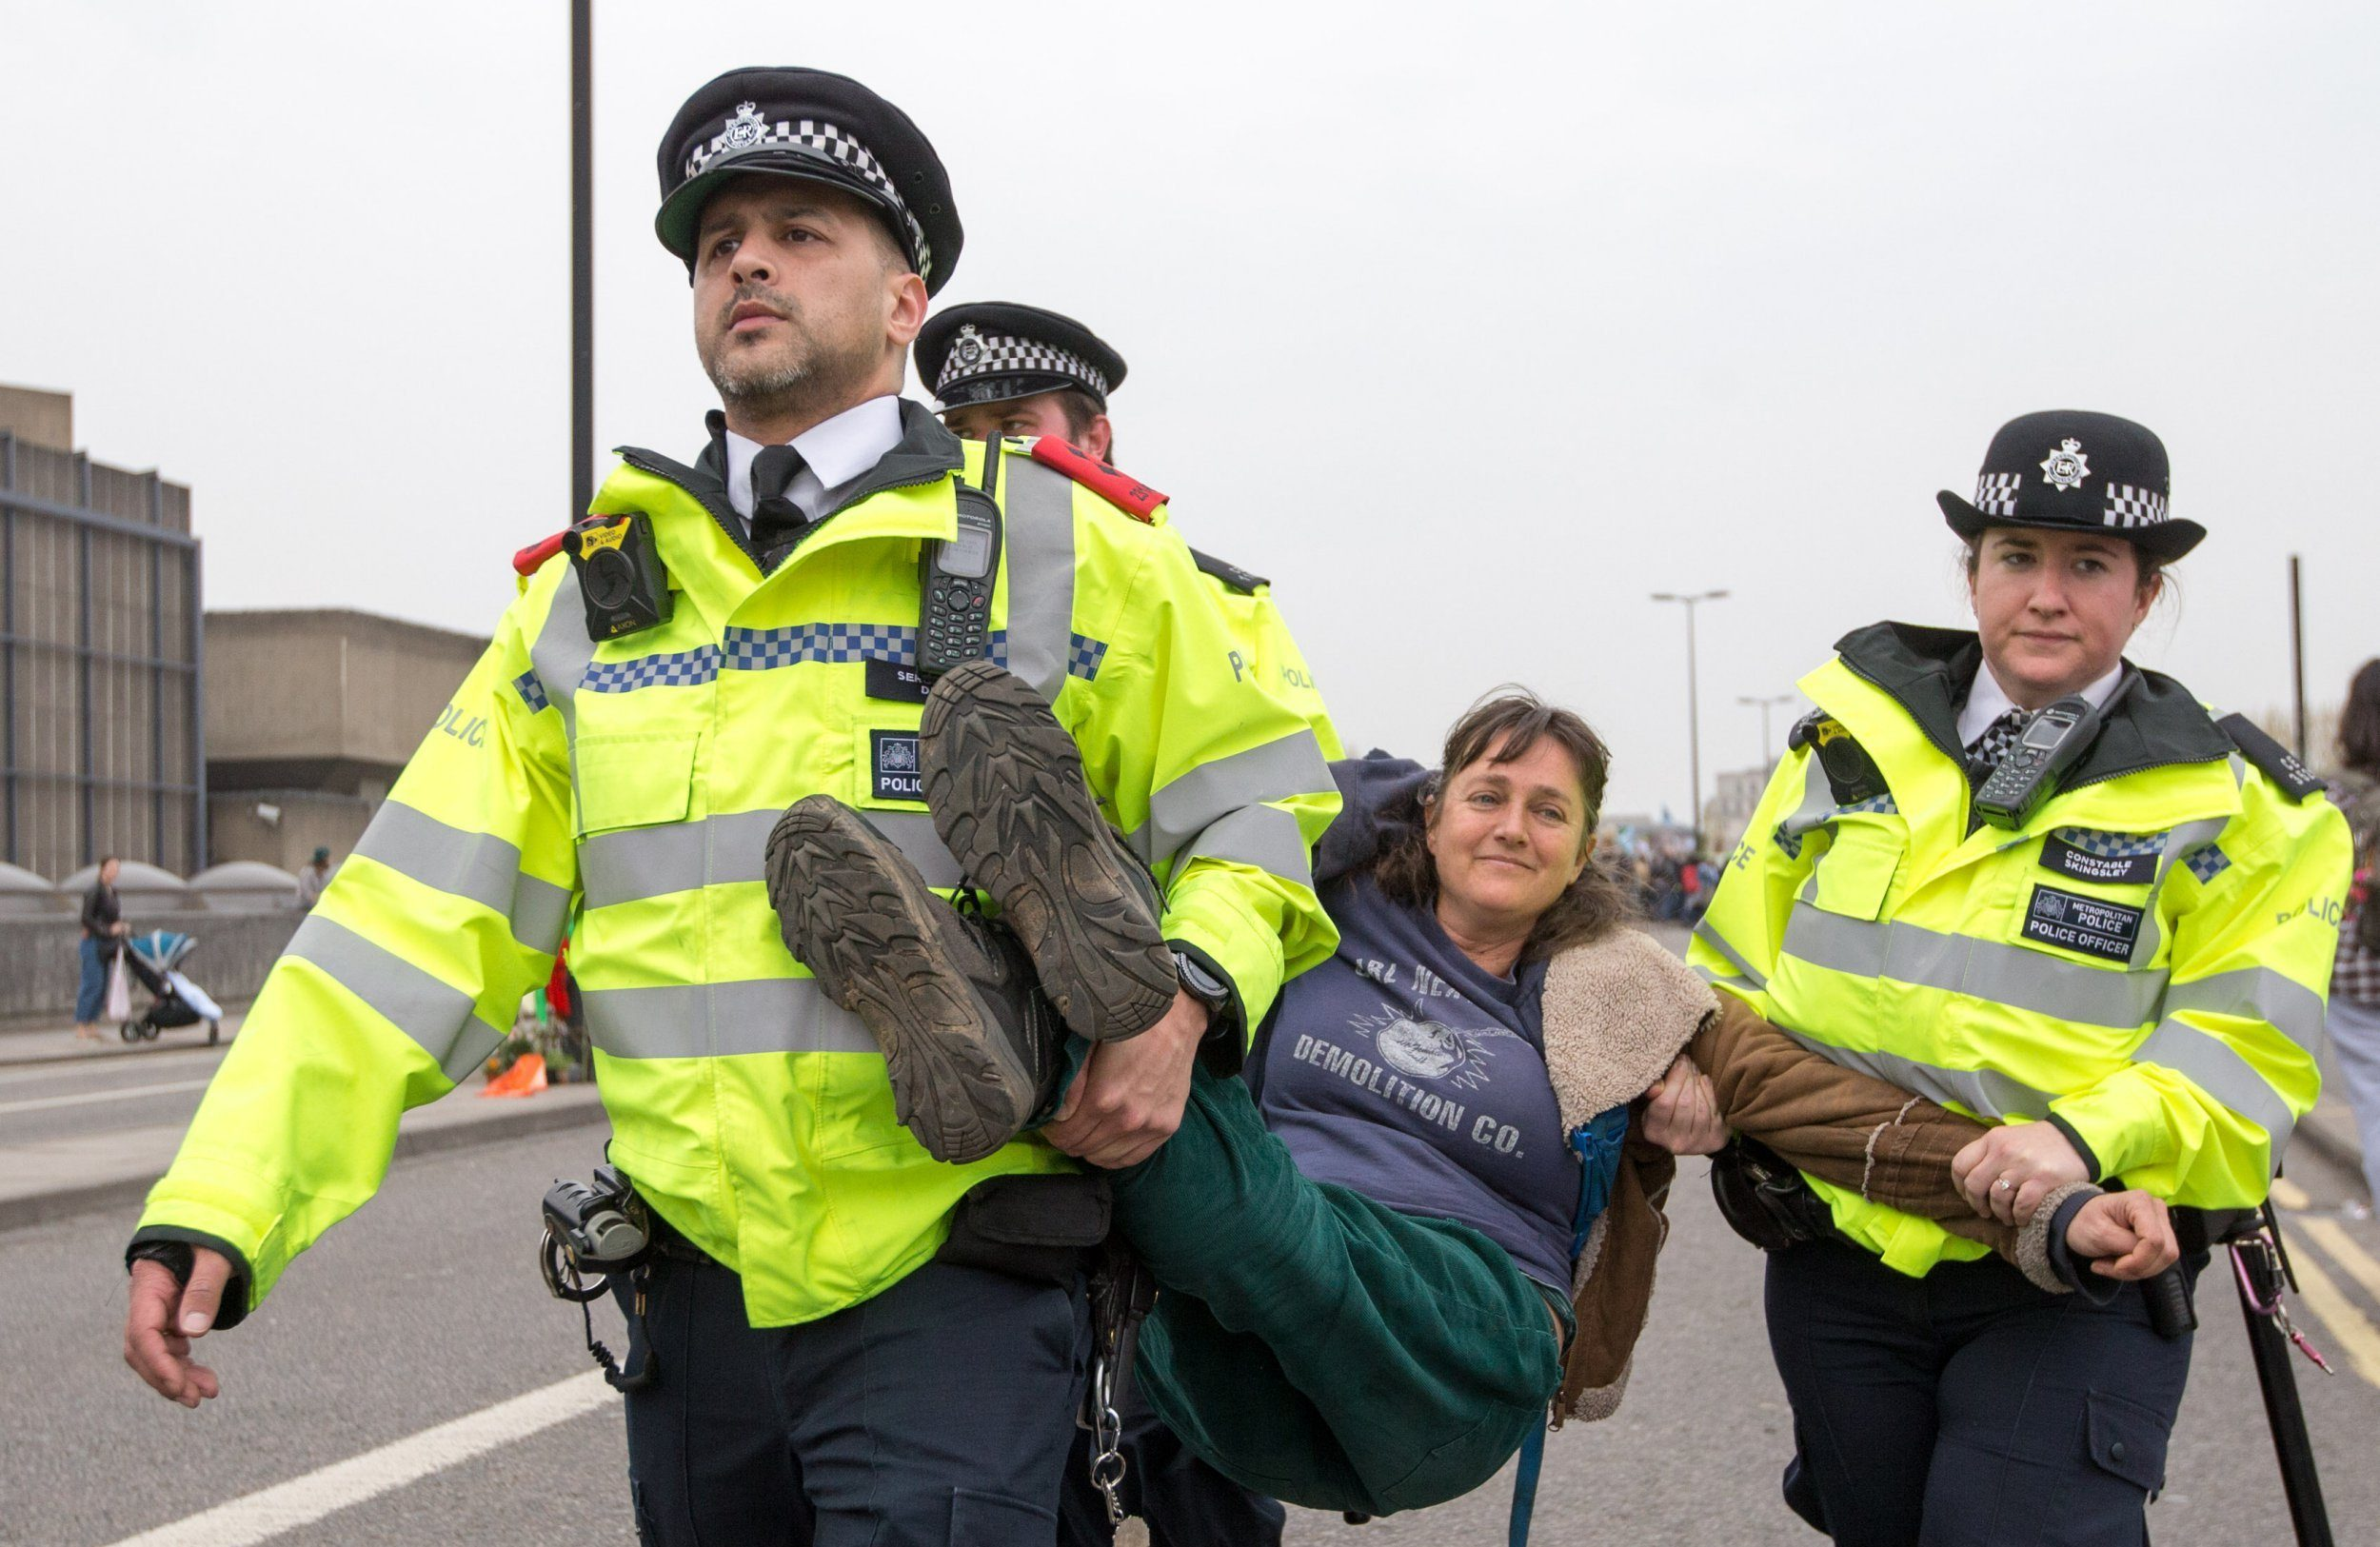 Hundreds of extra officers step in to tackle 'unique' climate change protest